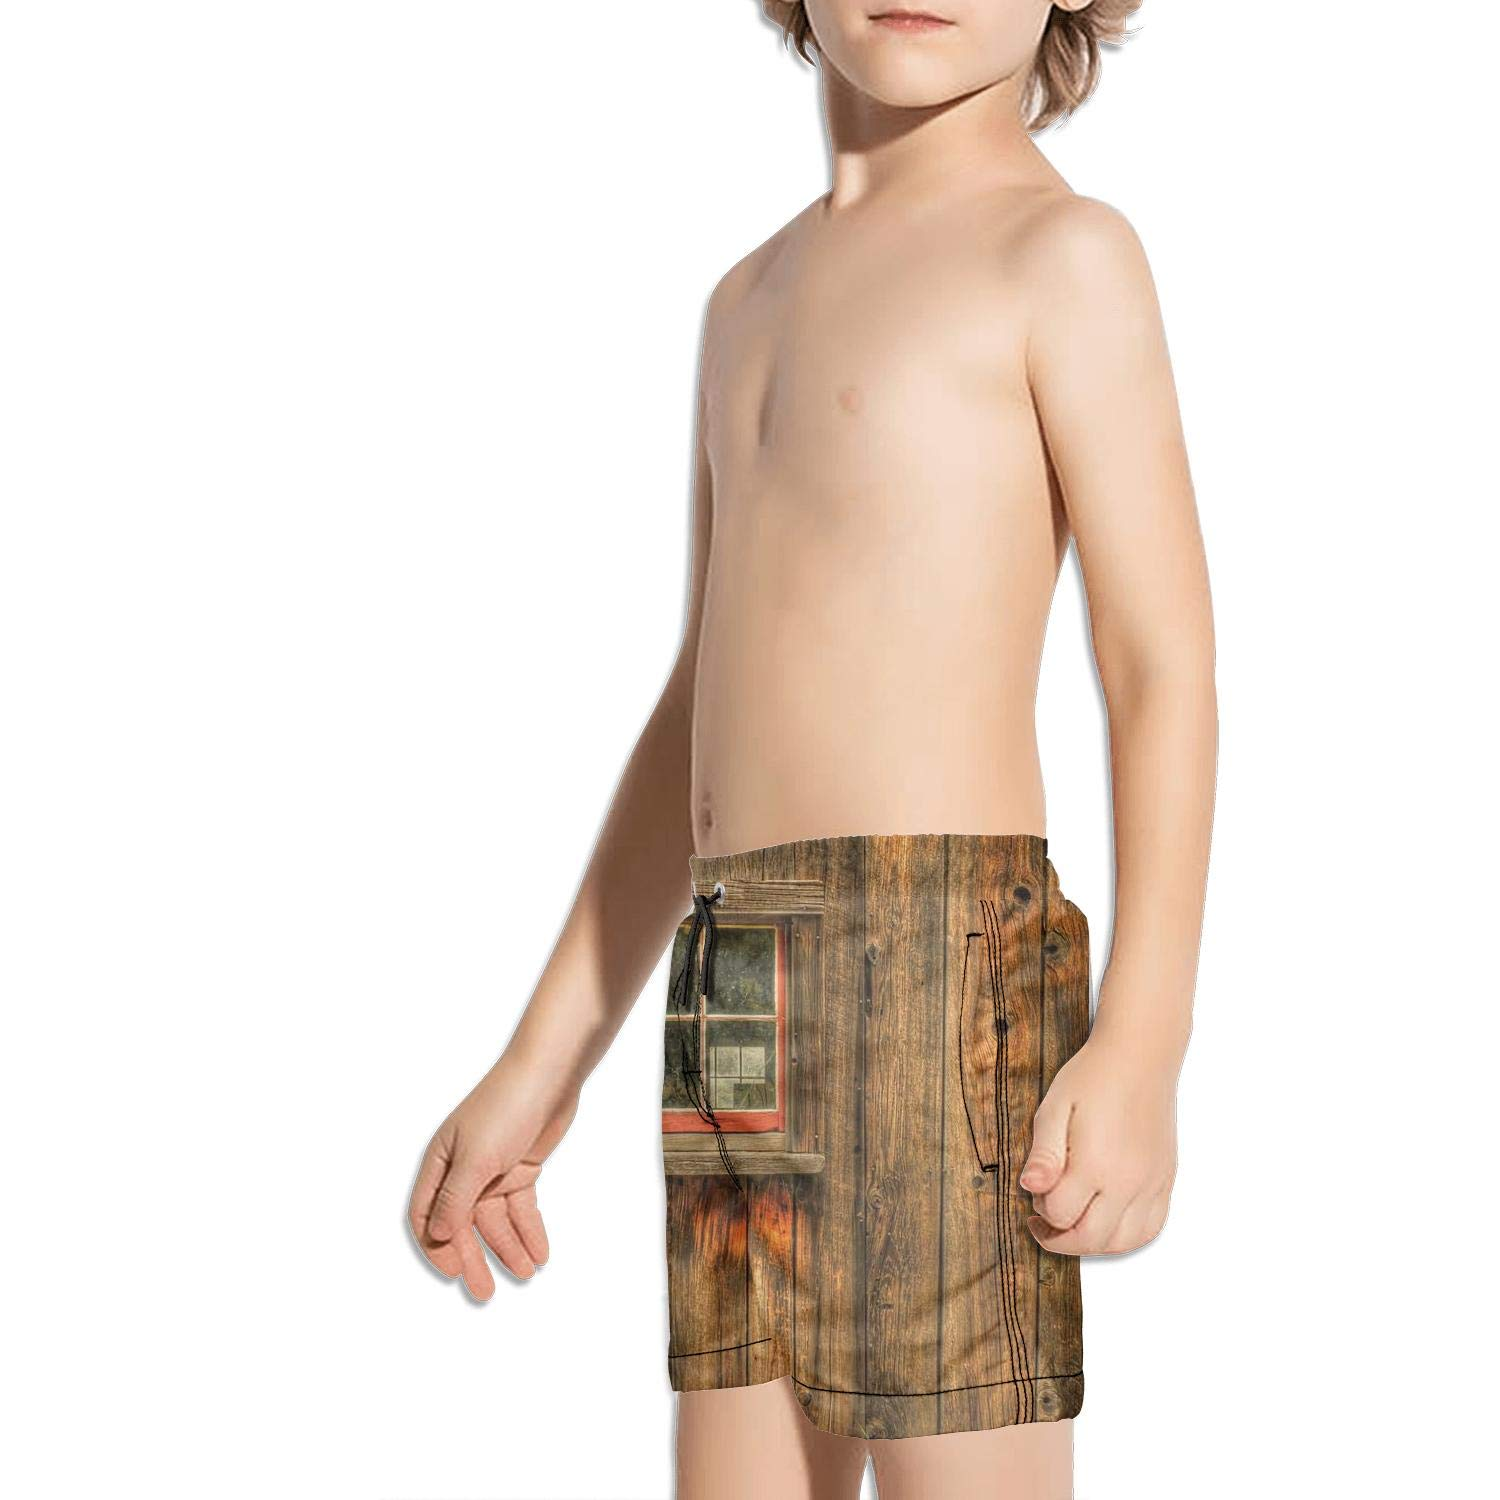 etstk Rustic Wooden barn Farmhouse Rural Kids Lightweight Shorts for Men